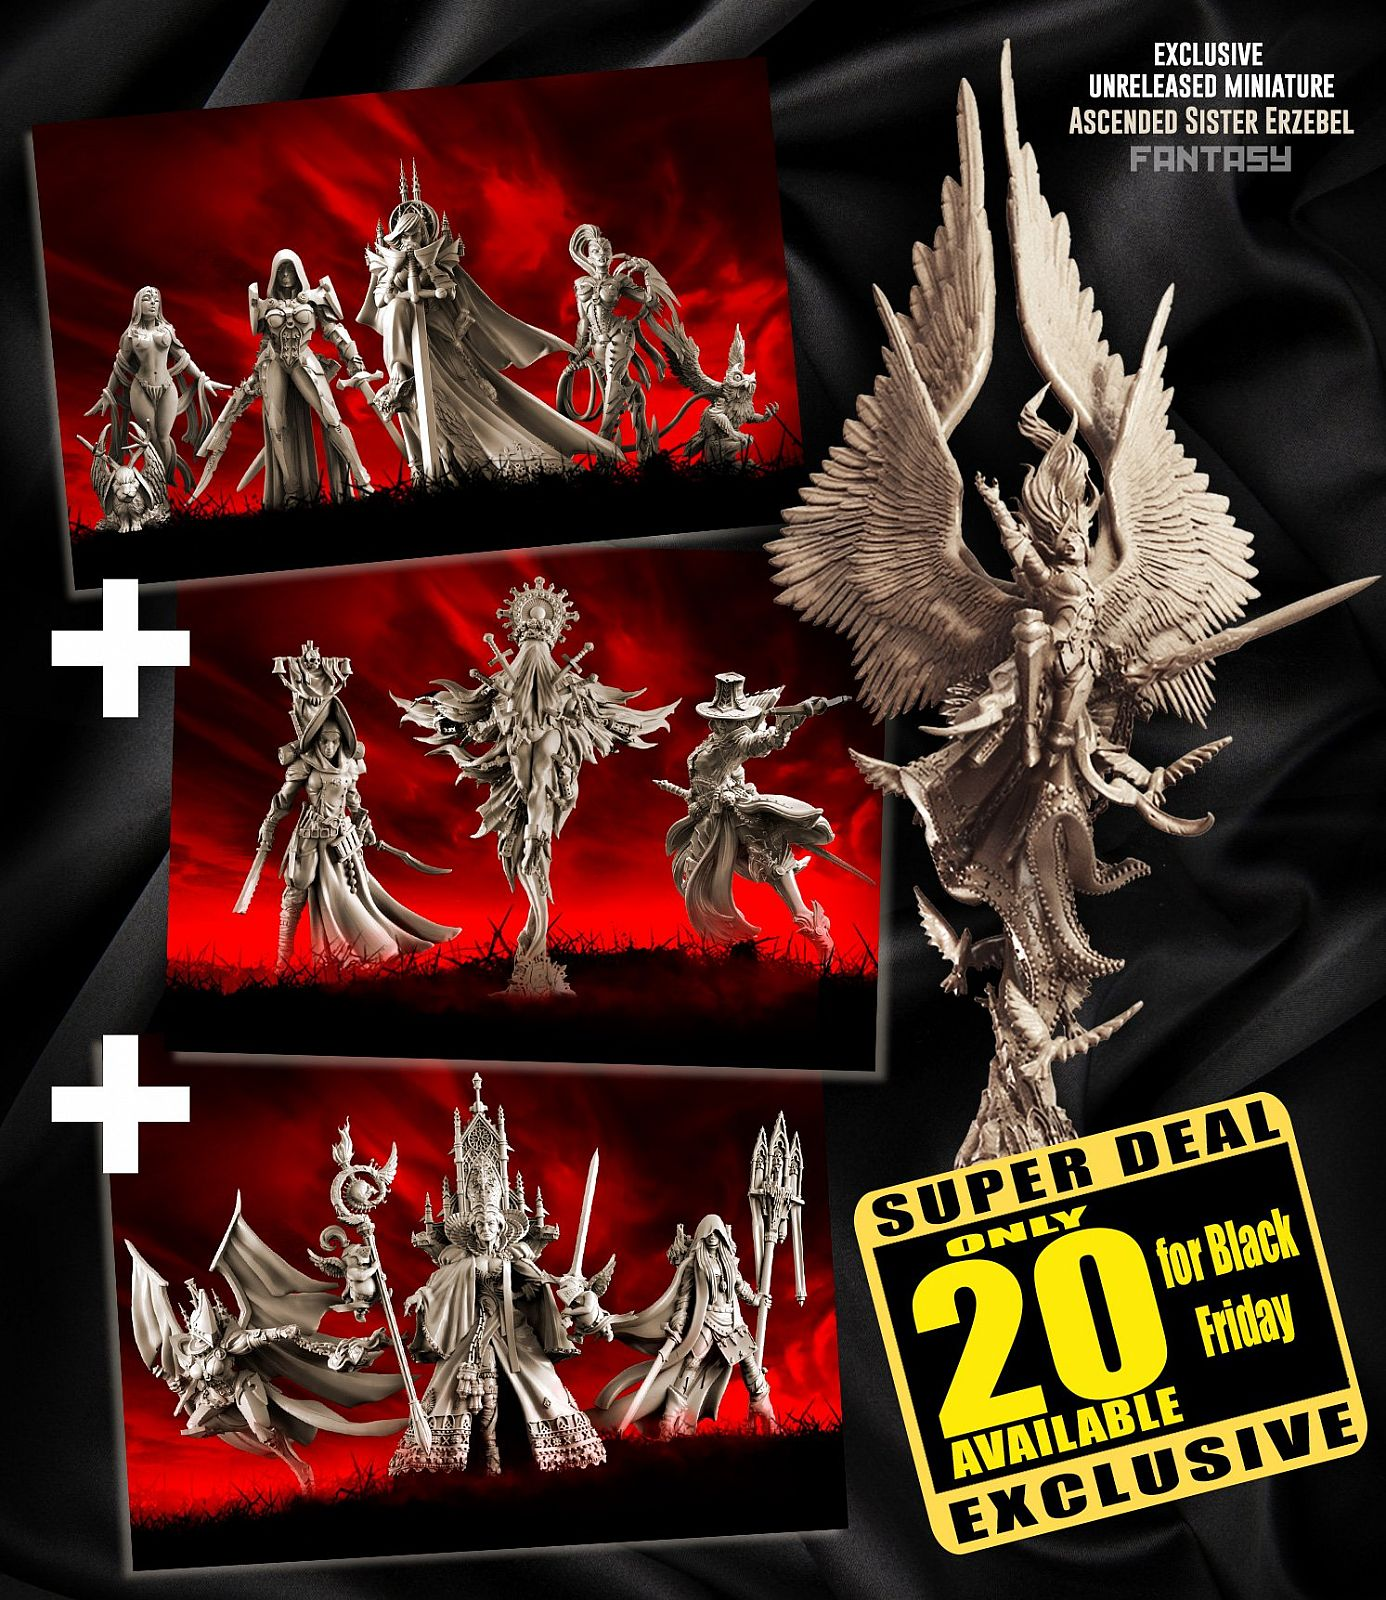 EXCLUSIVE Sisters Fantasy multipack with Erzebel